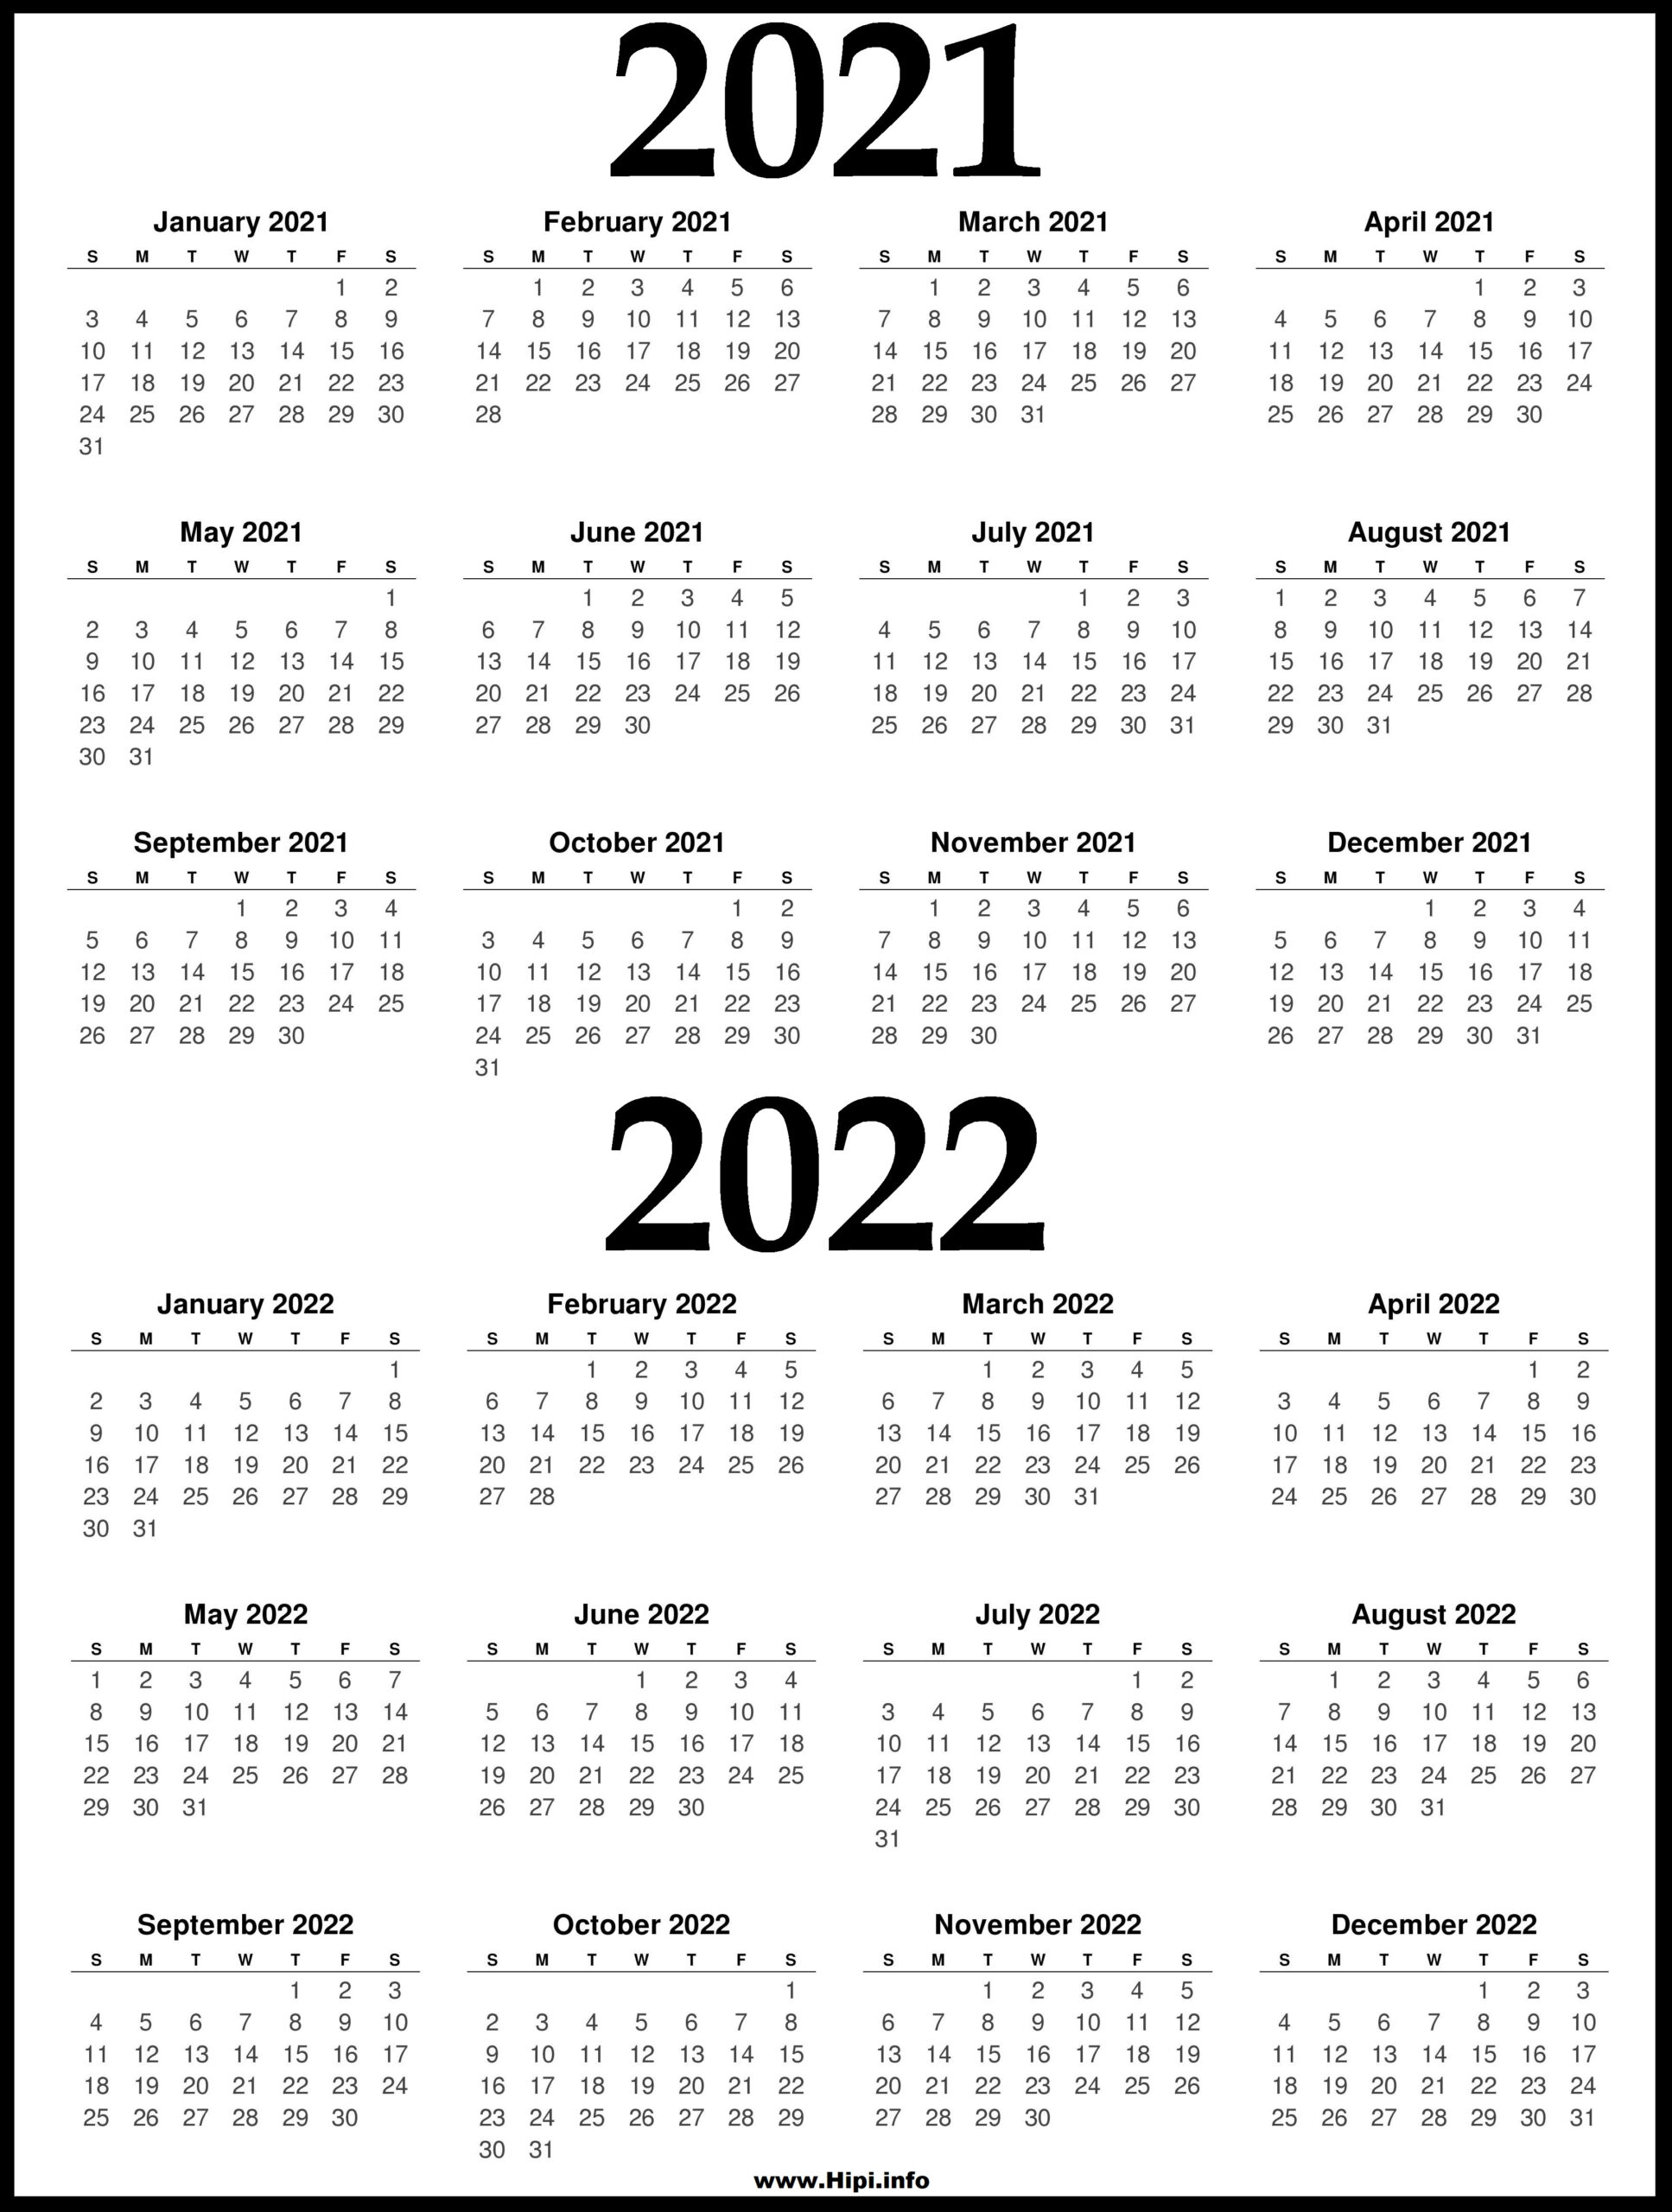 2021 And 2022 Printable Calendar - 2 Year Calendar - Hipi